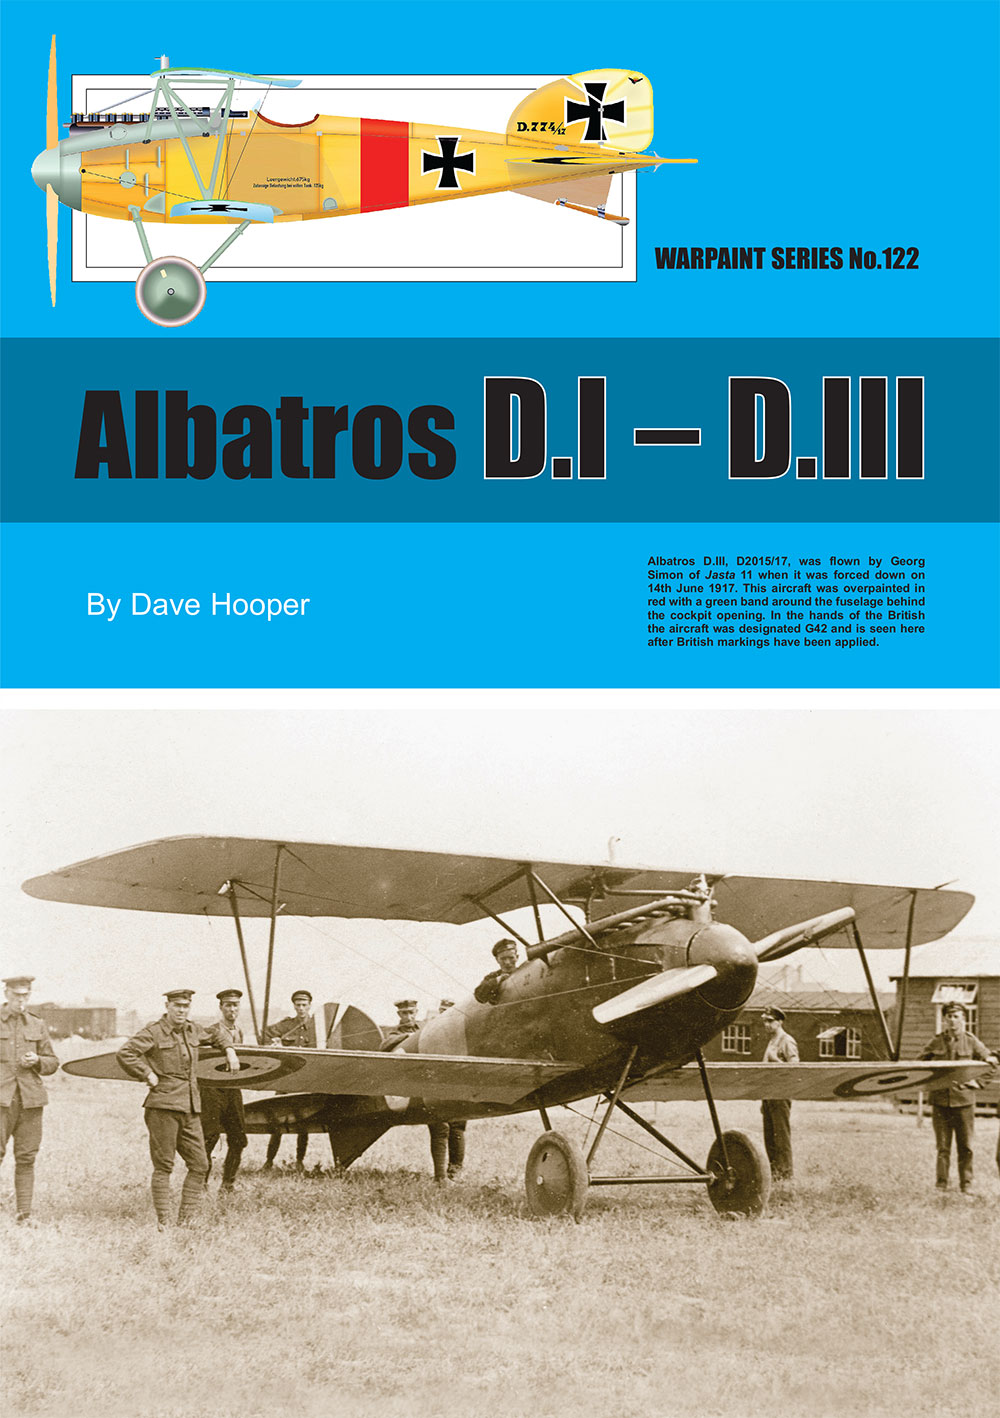 Guideline Publications USA Albatros D.1 - D.111 Warpaint 122